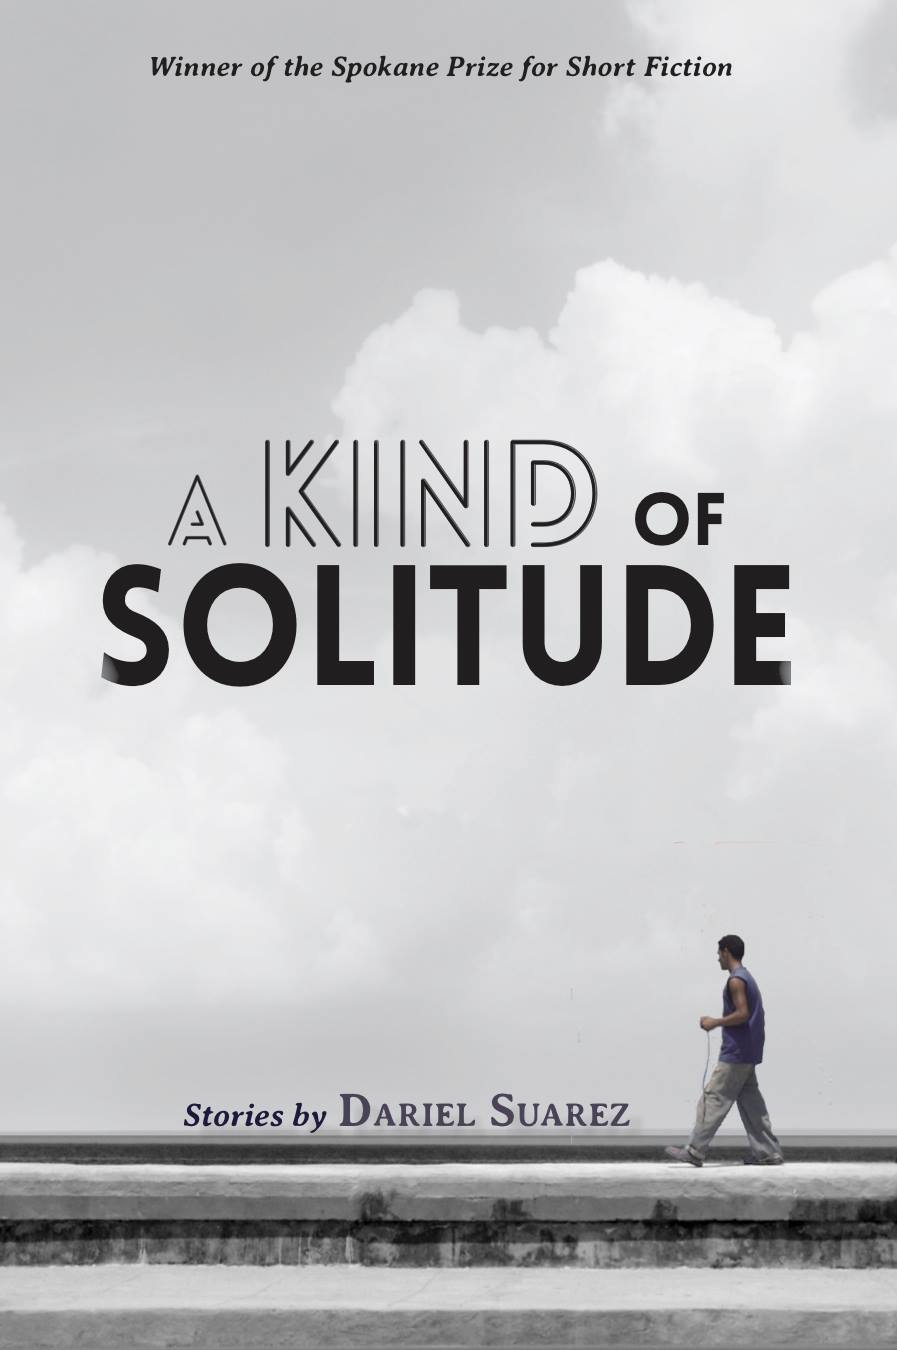 DS Kind of Solitude Cover.jpg